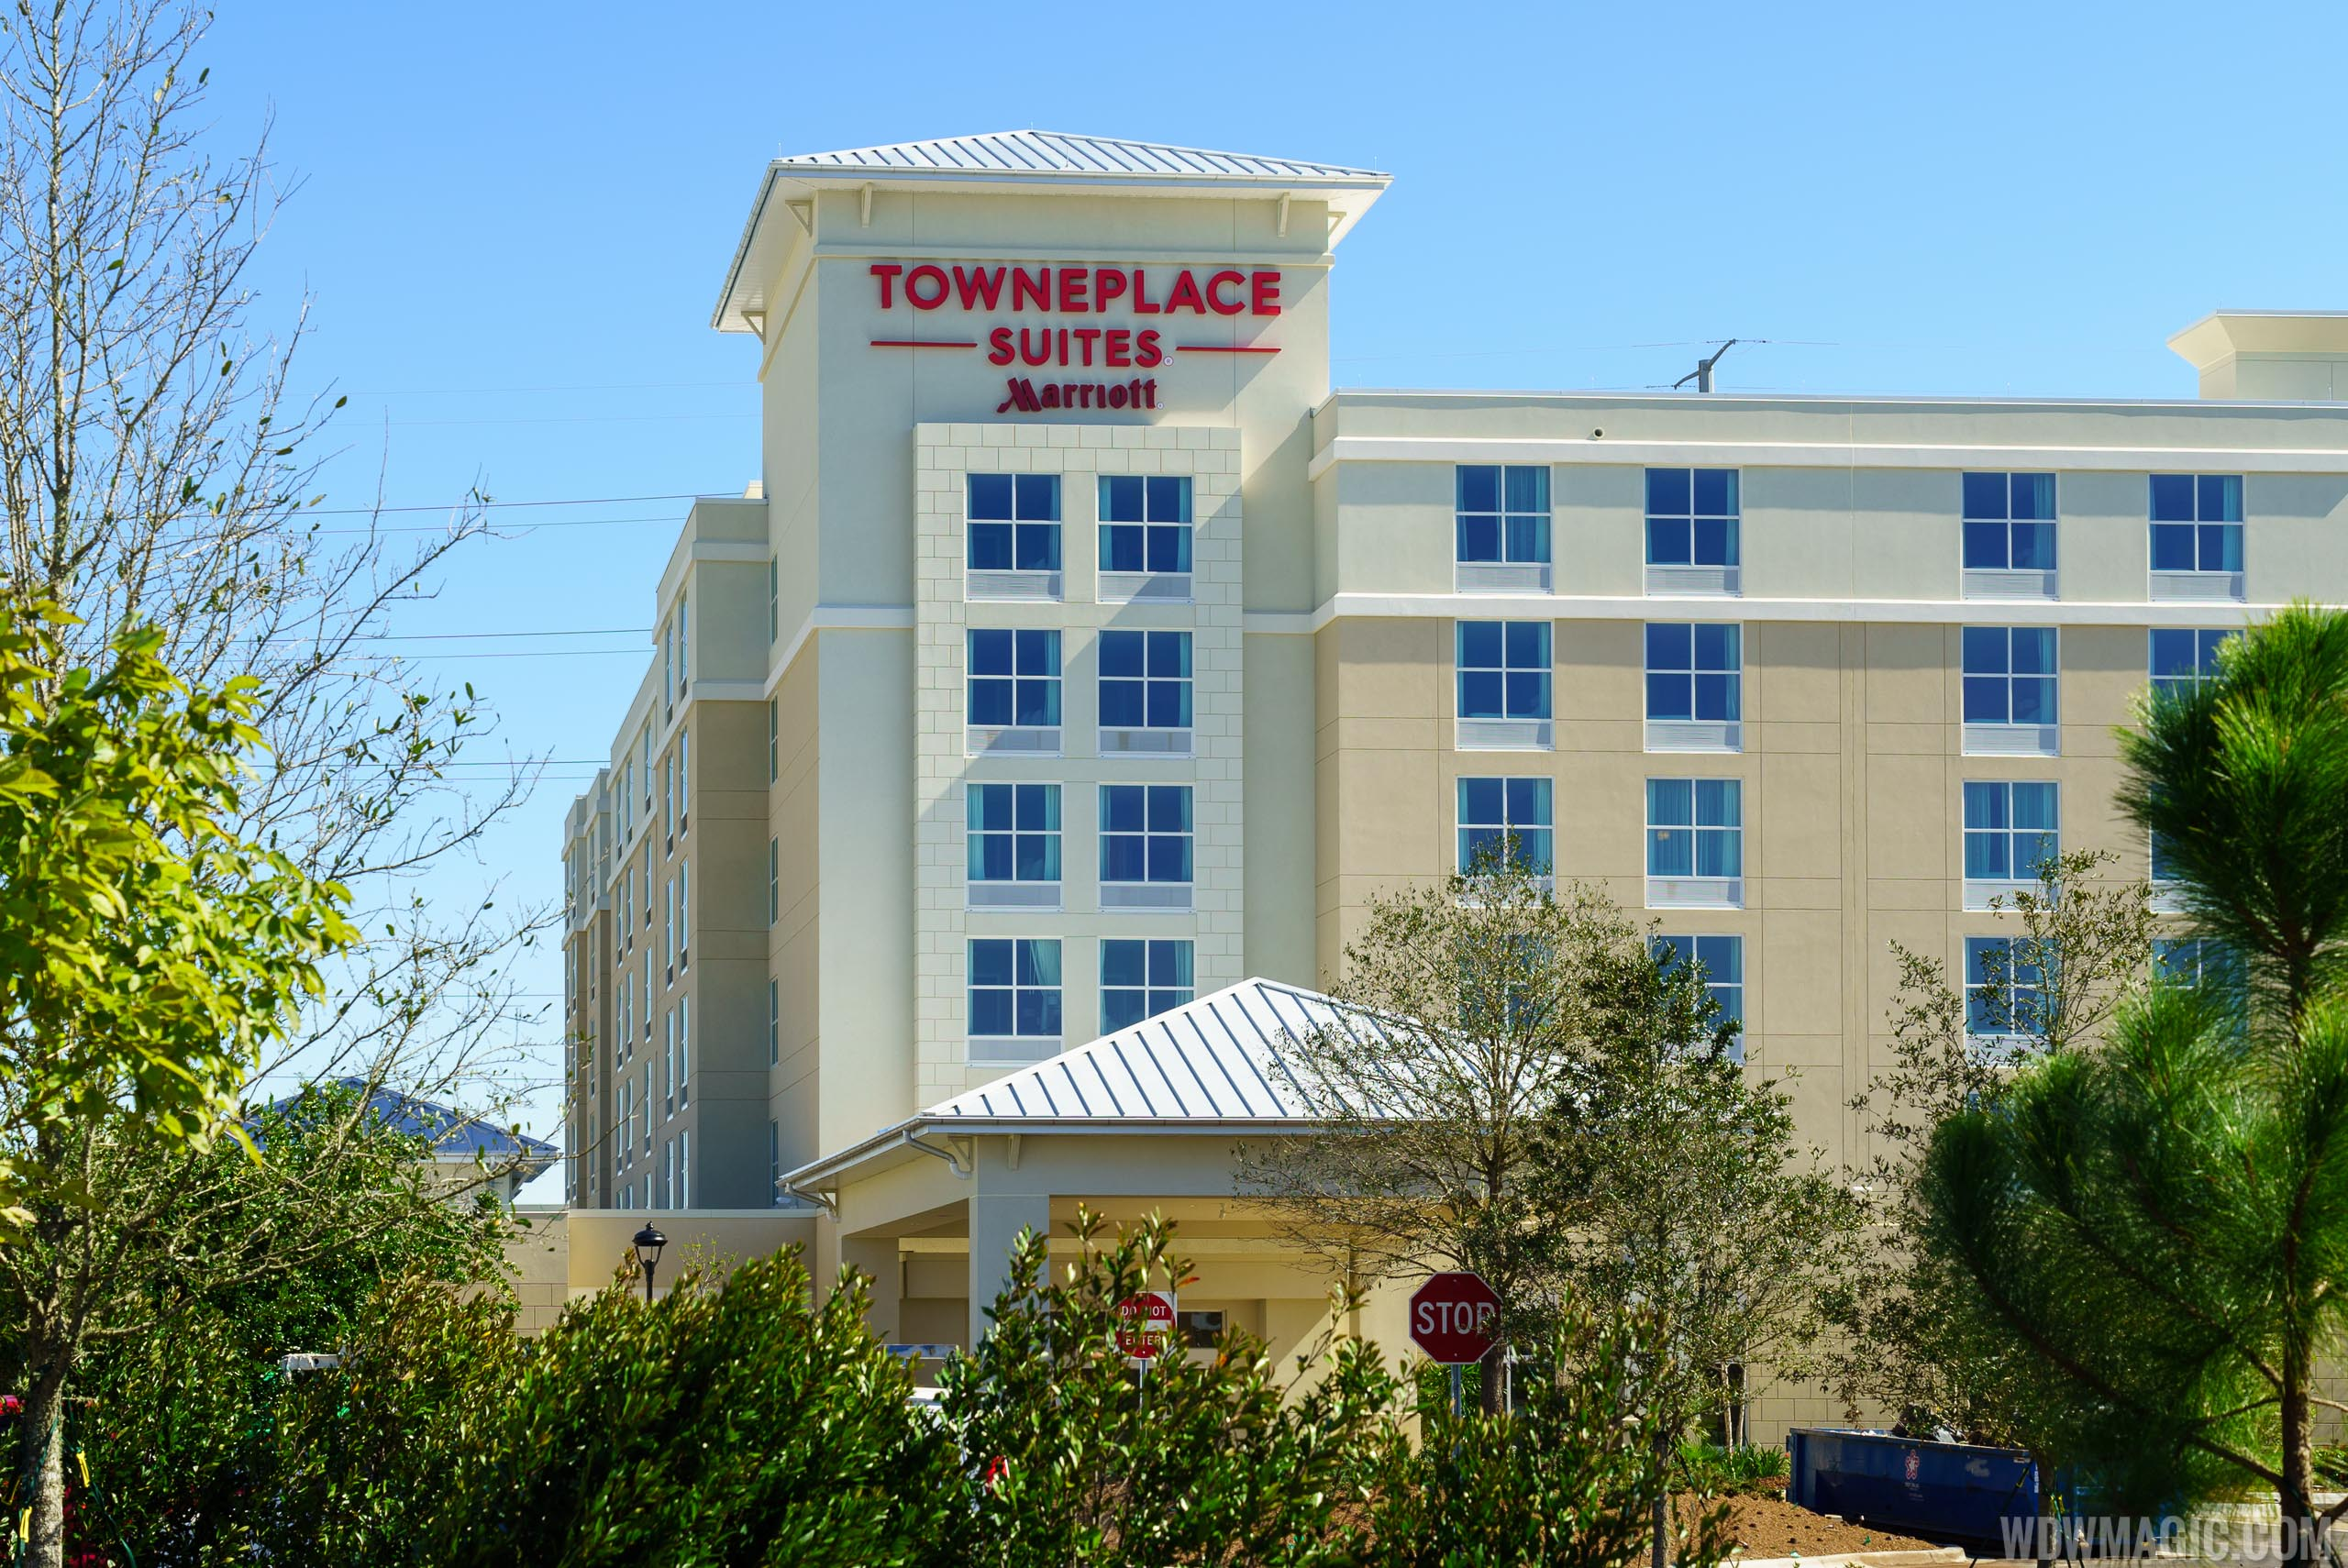 TownePlace Suites at Flamingo Crossings